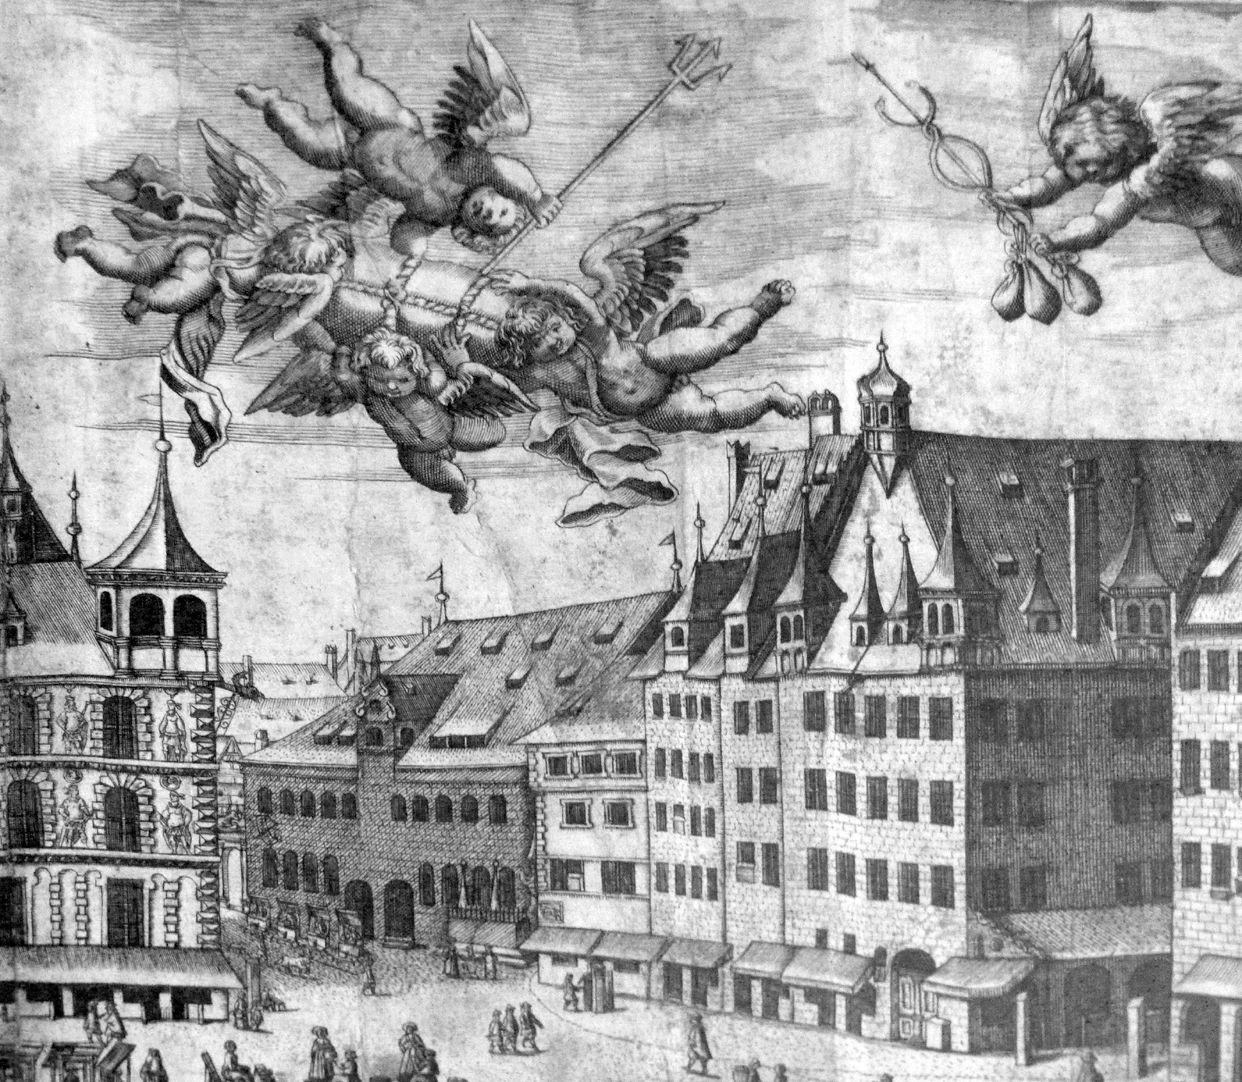 Real image of the market of the Imperial City of Nuremberg in detail South west market corner and butchery